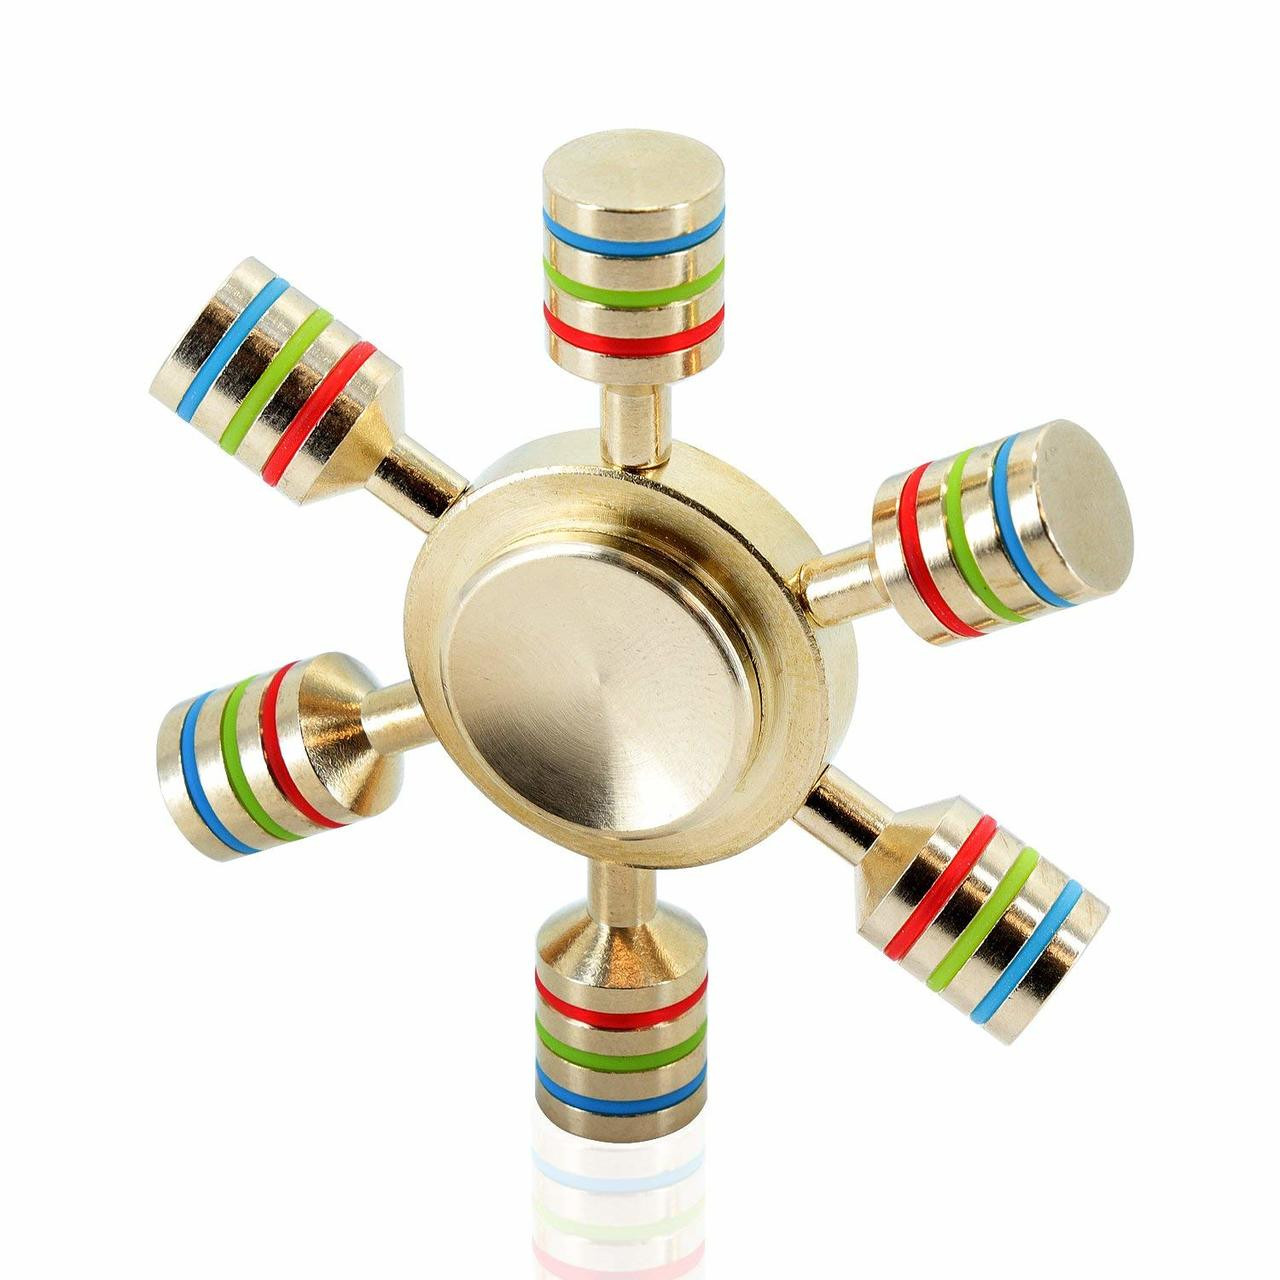 Premium Fidget Spinners - Heavy Duty Brass , Stainless Steel Bearing, 3+ Minutes Spinning, Tri-Band Colored Bars